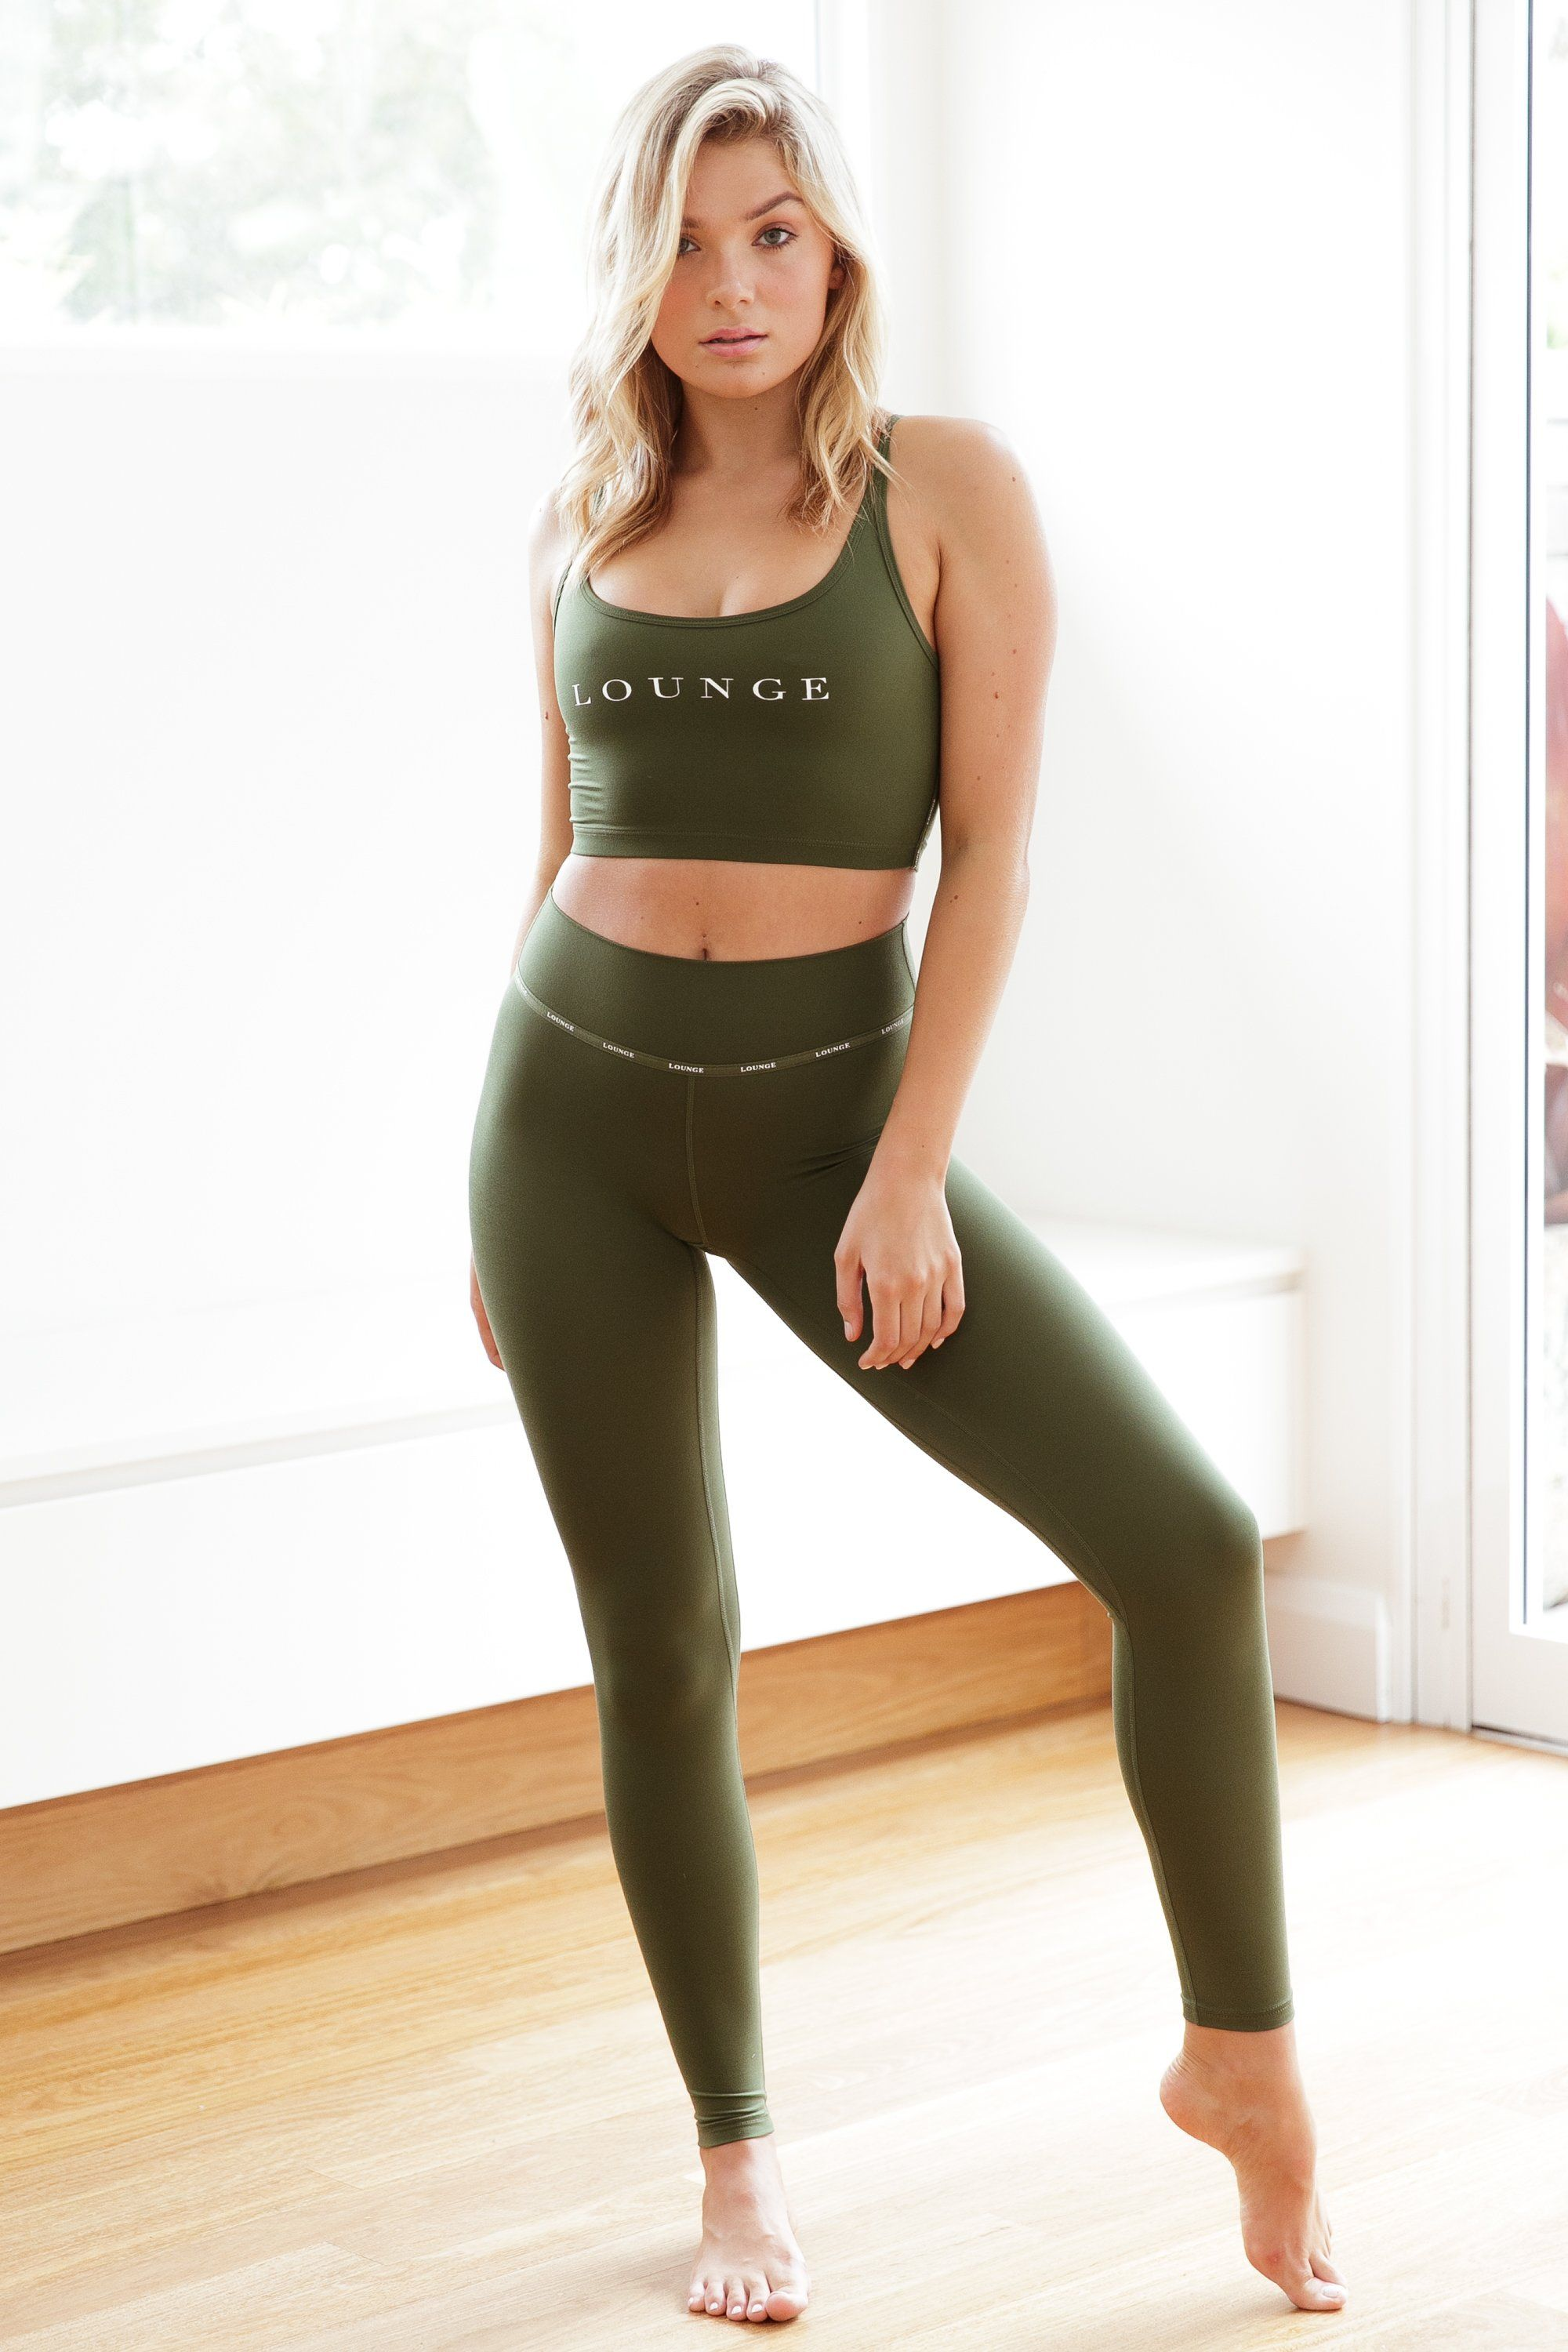 a818d68f463554 Minimal Forest Green Cropped Top & High Waisted Leggings Set Lounge  Underwear, Sports Leggings,